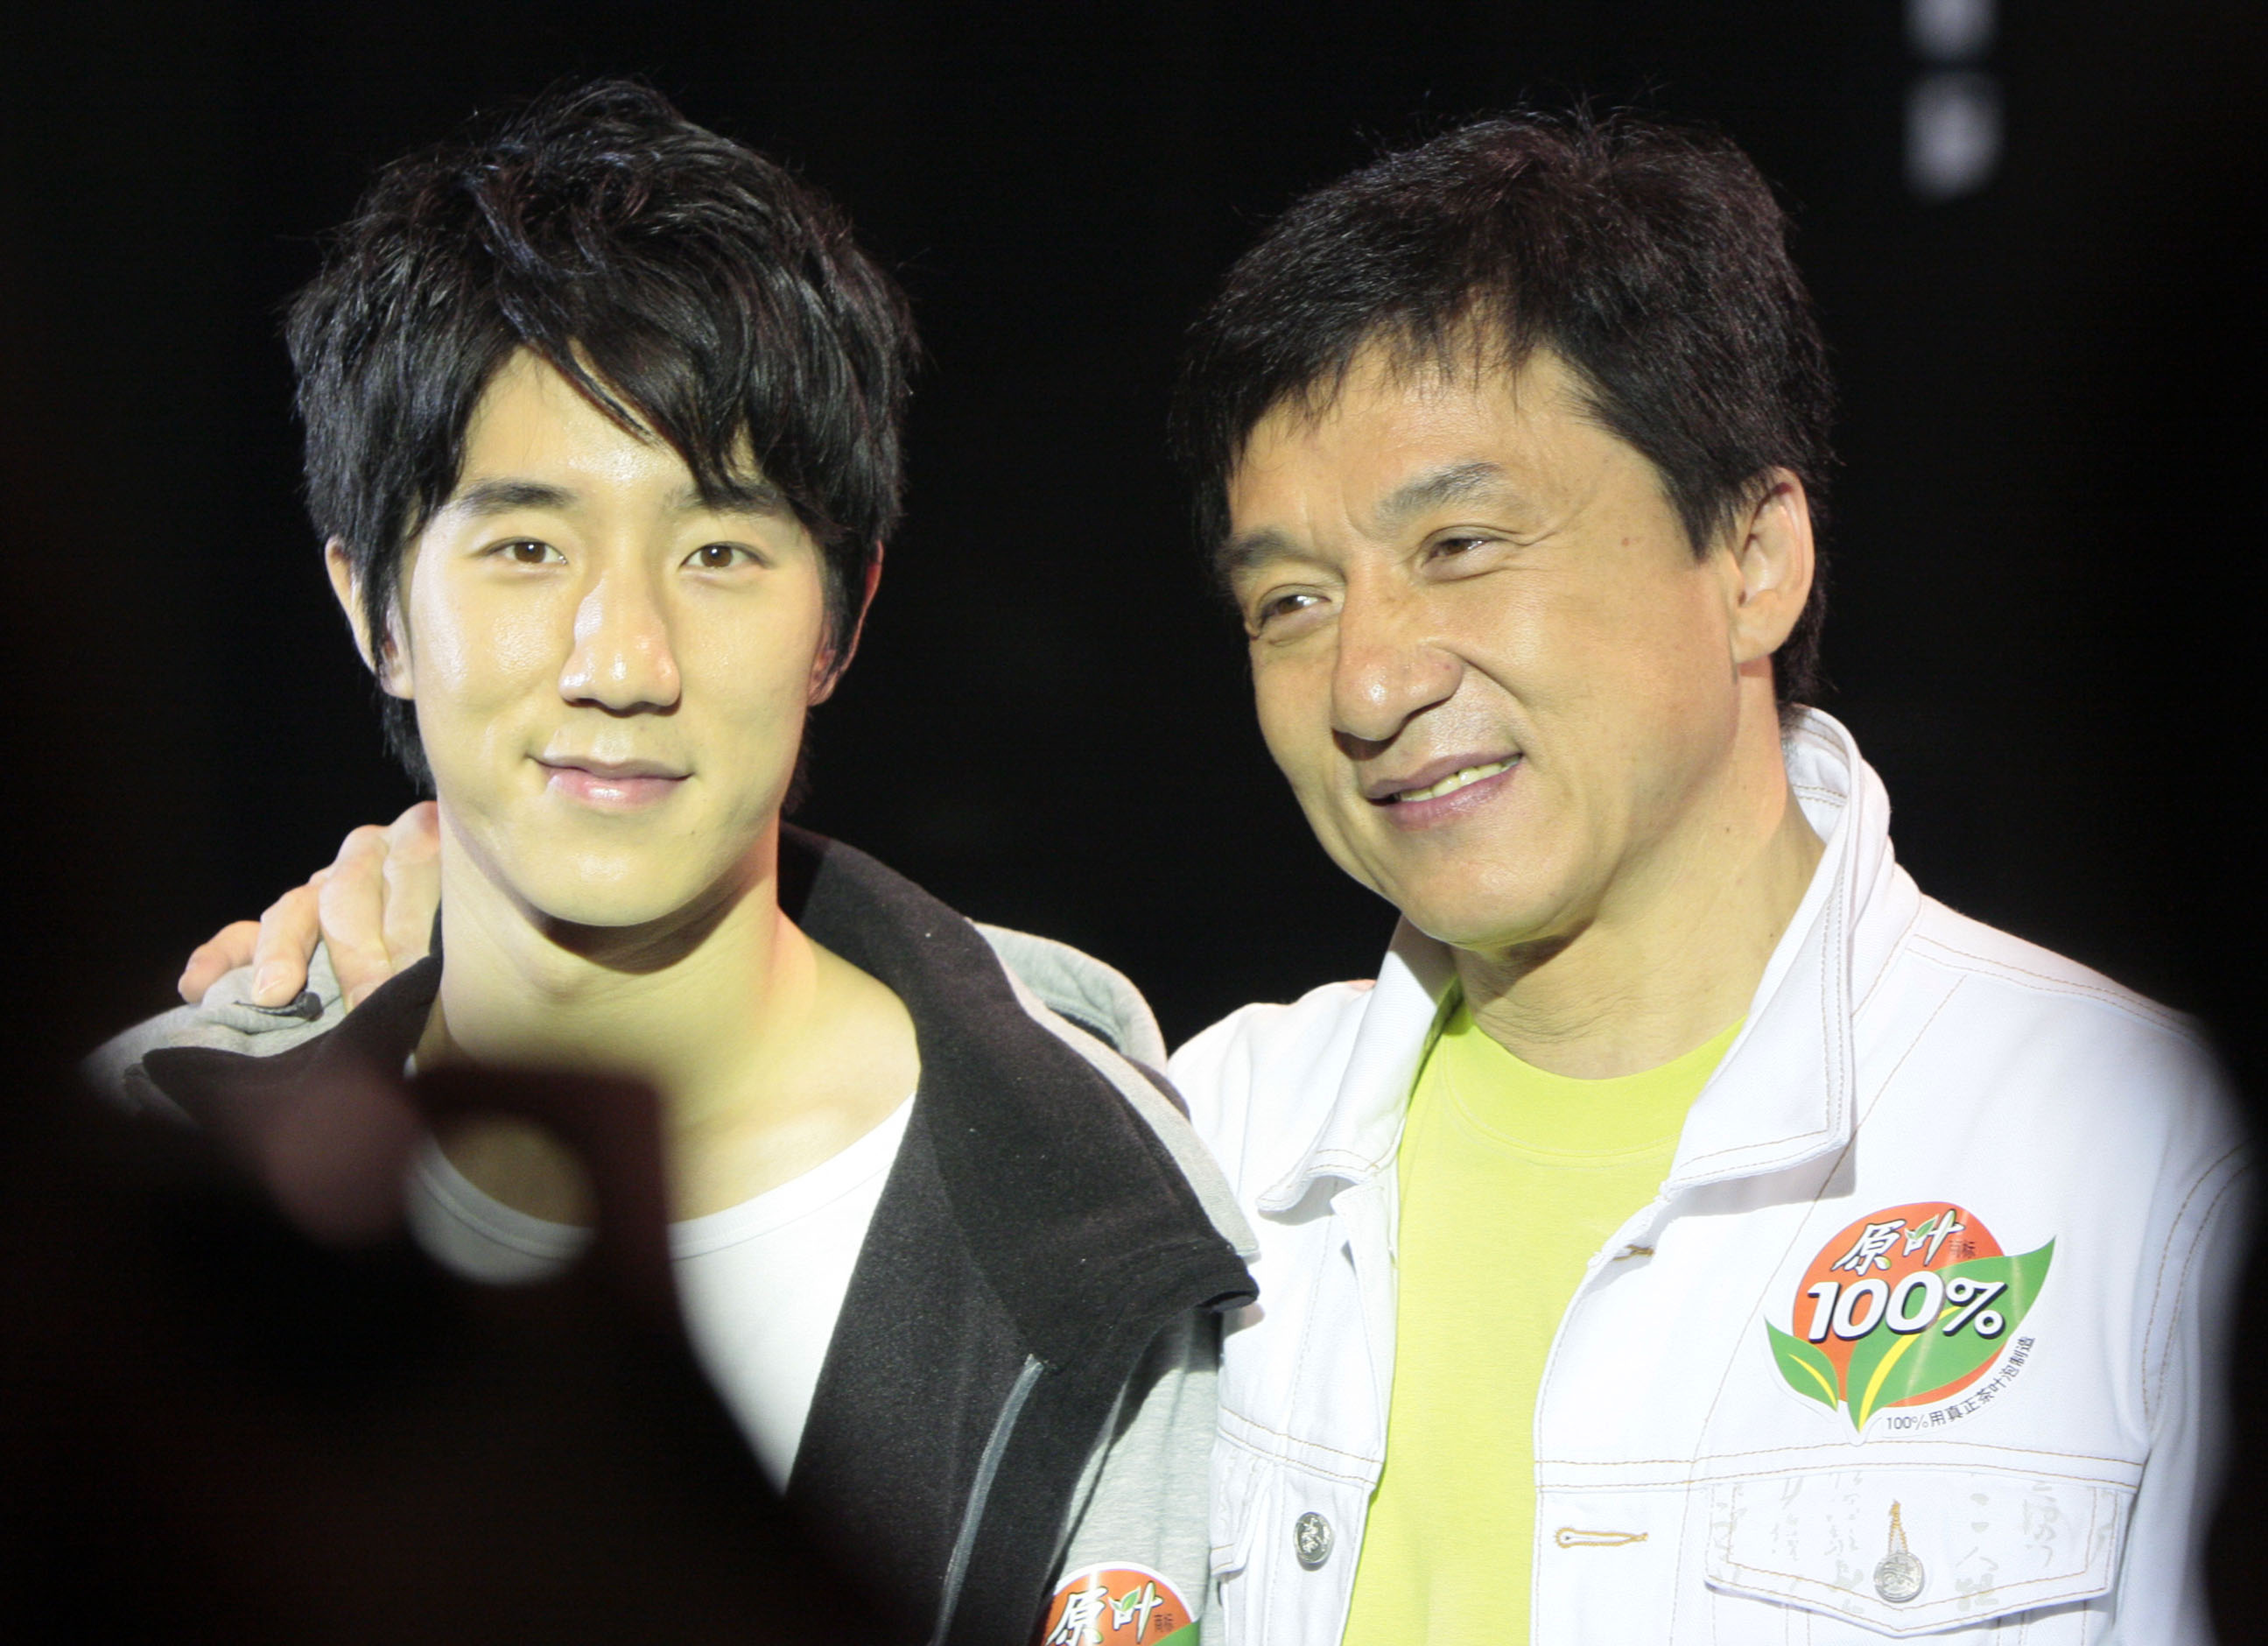 Jackie Chan and his son Jaycee Chan attends a commercial event on April 5, 2008, in Shanghai